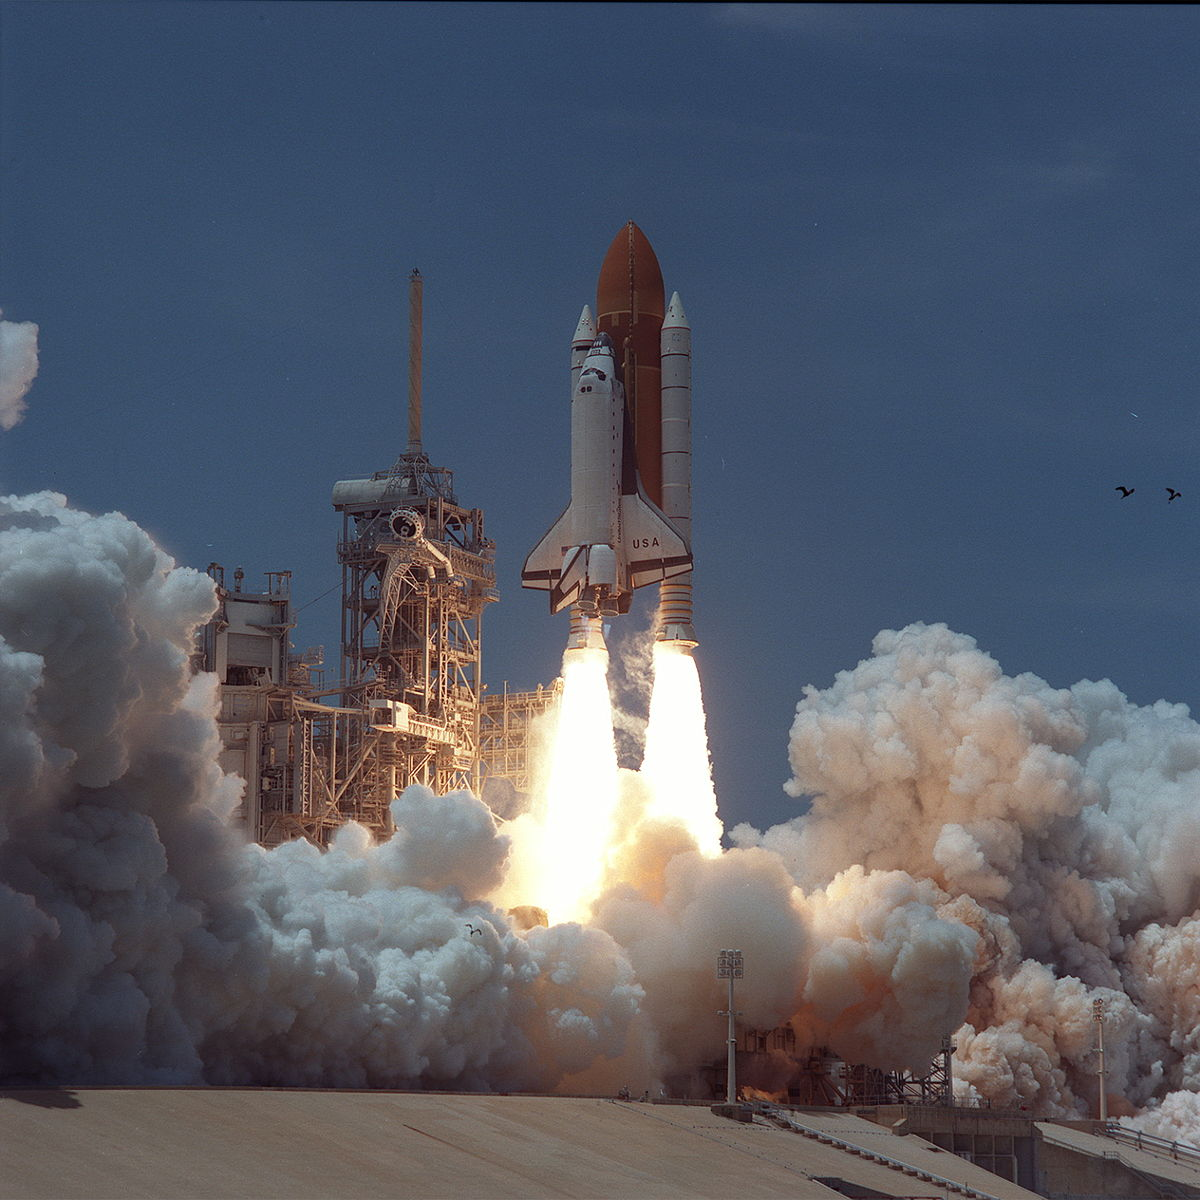 space shuttle columbia take off - photo #19